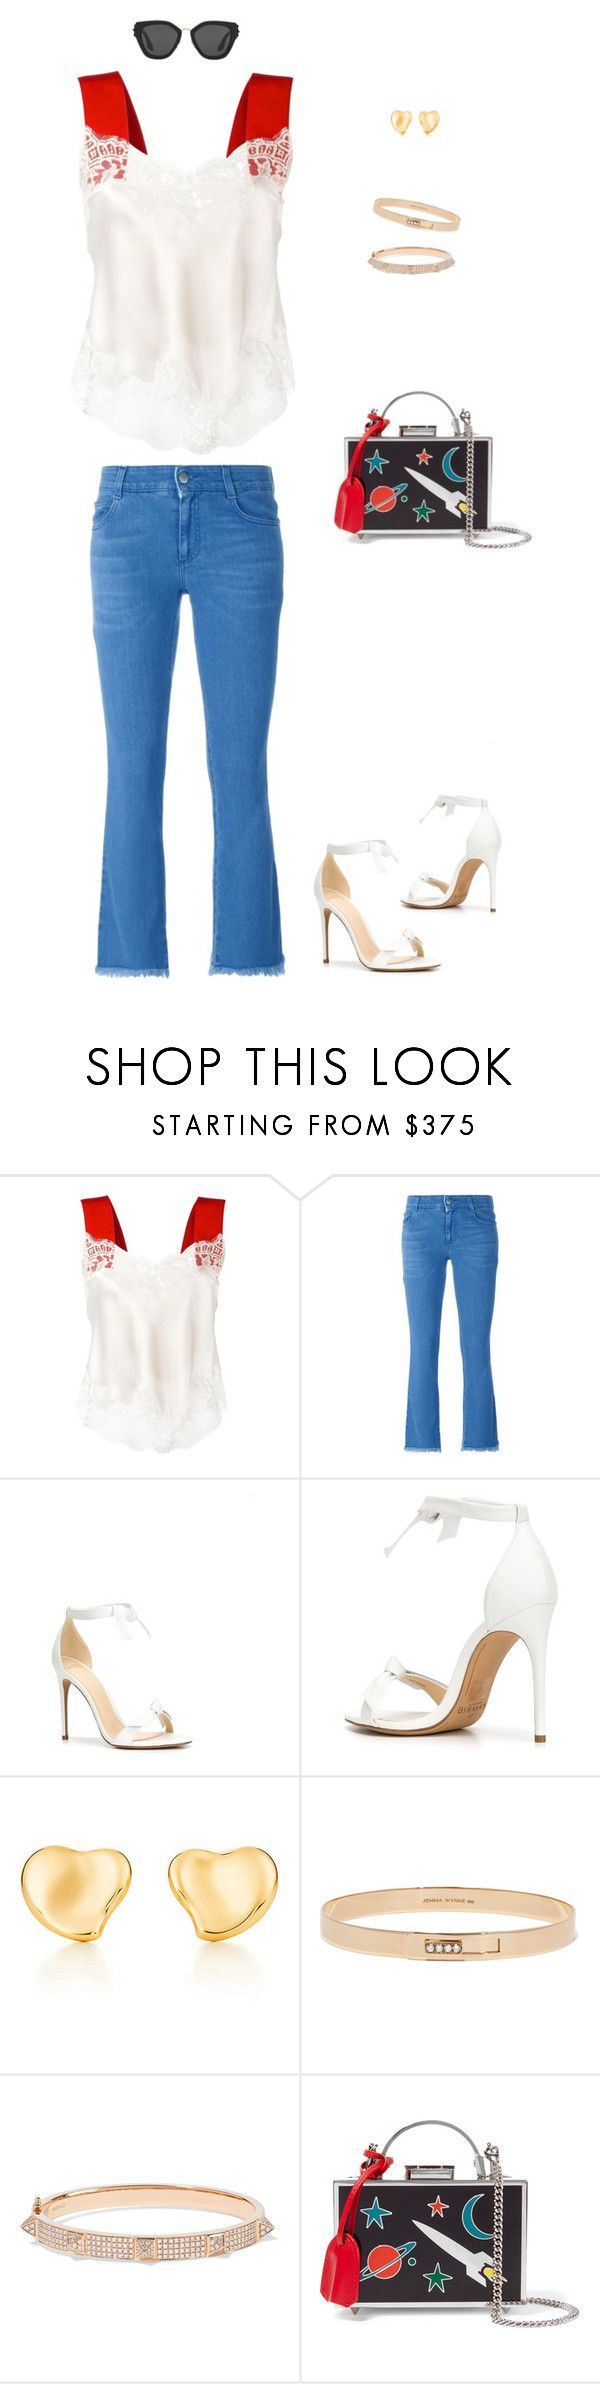 """Untitled #31"" by nextep99 ❤ liked on Polyvore featuring Givenchy, STELLA McCARTNEY, Alexandre Birman, Elsa Peretti, Jemma Wynne, Anita Ko, Mark Cross and Prada"